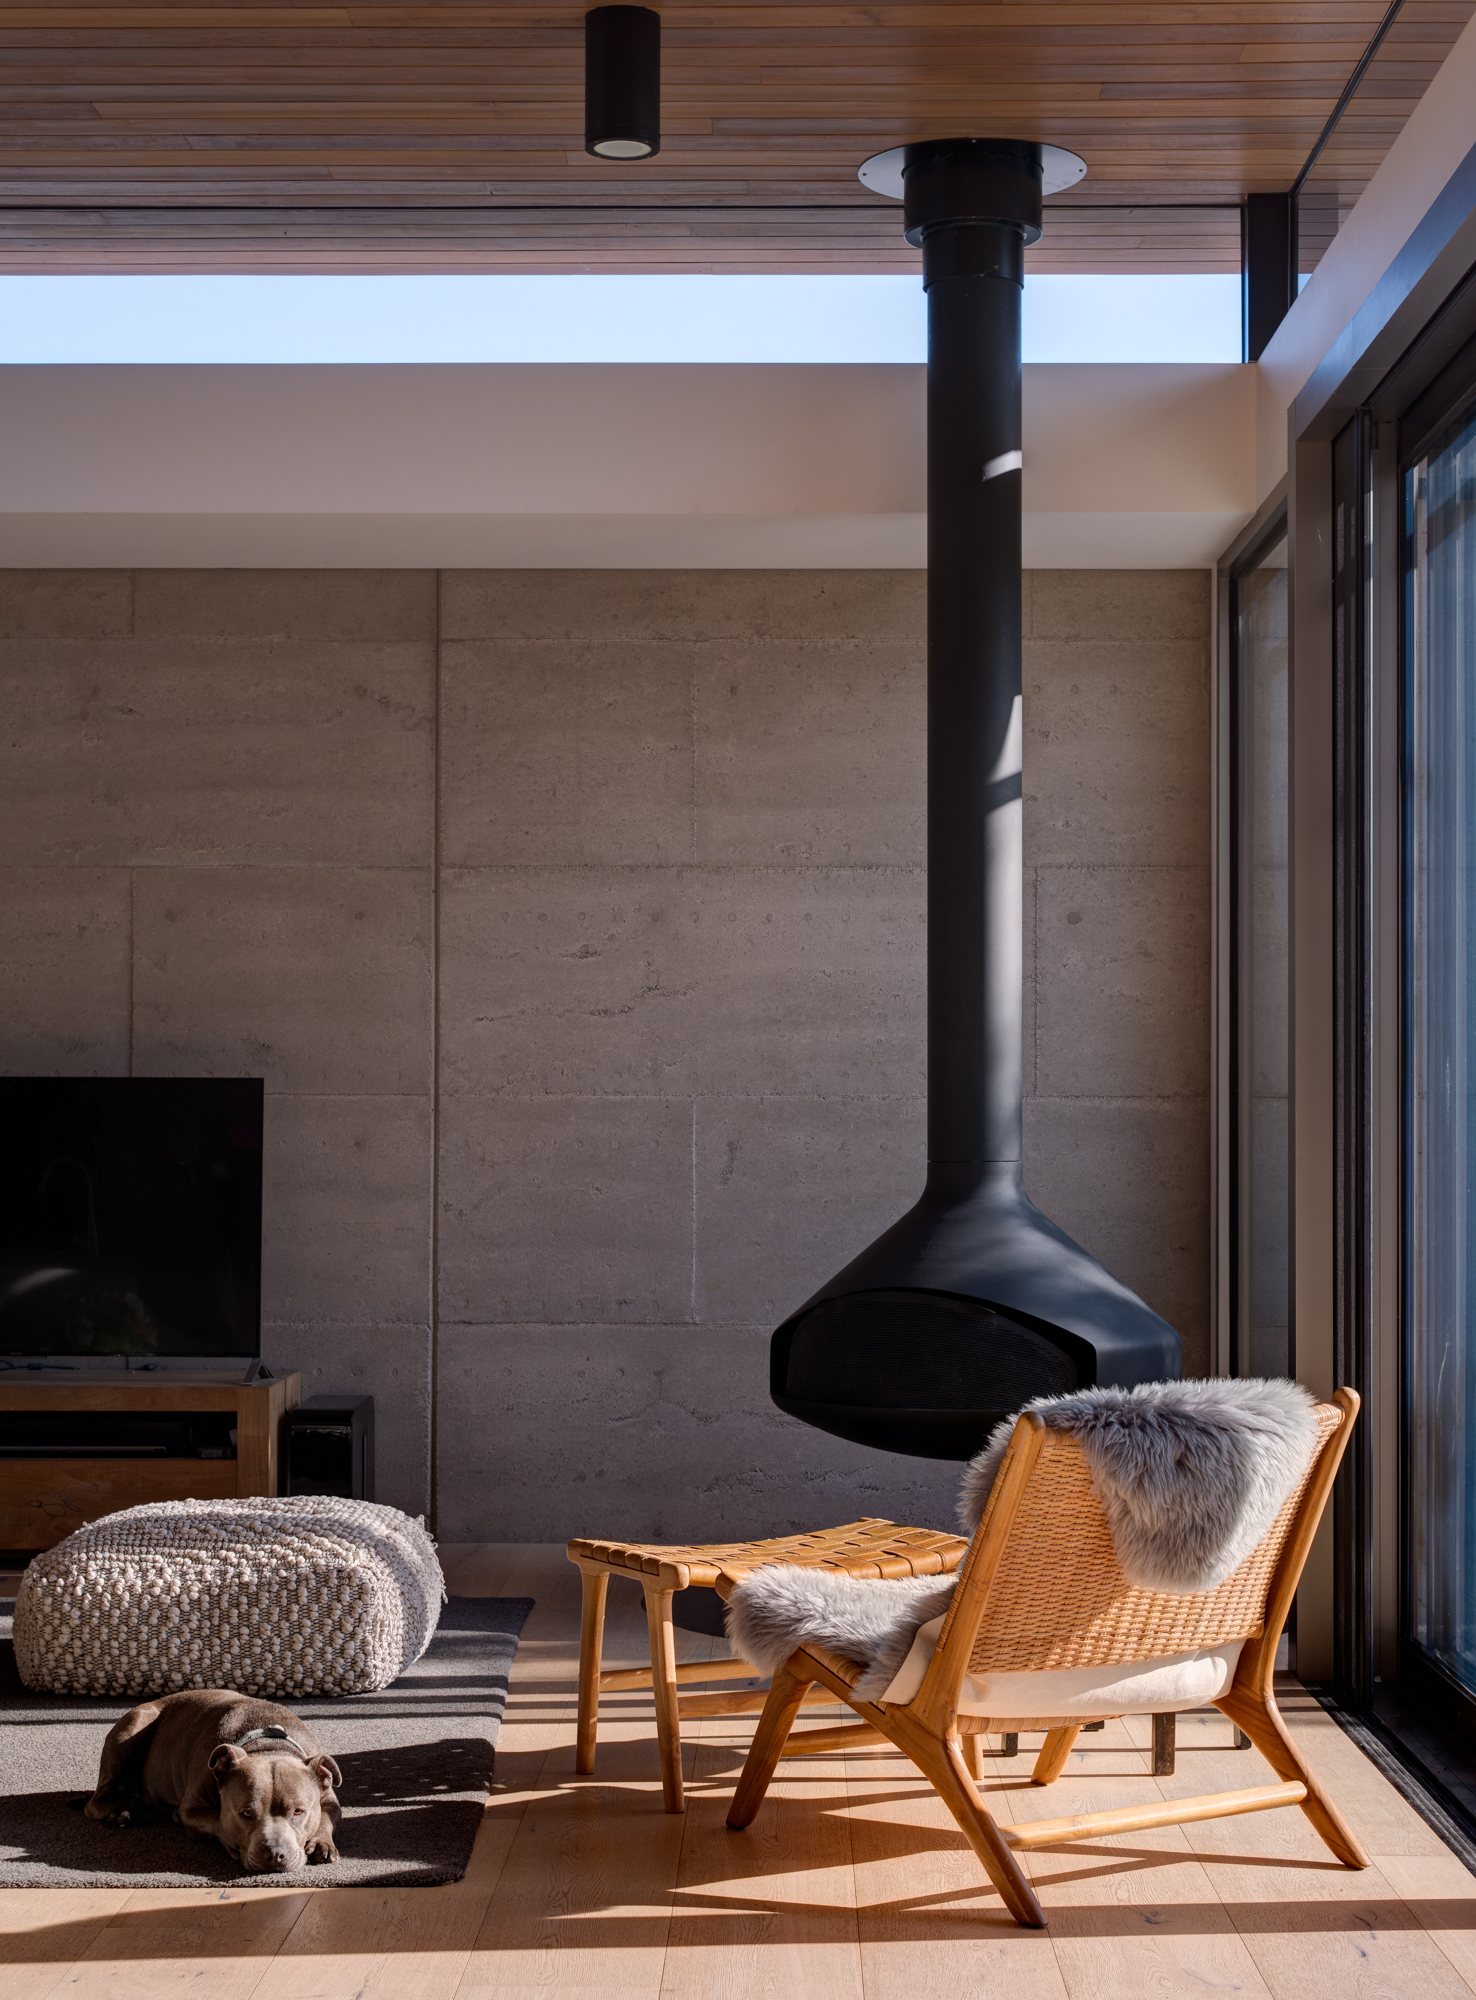 Bluff House by Heycon.